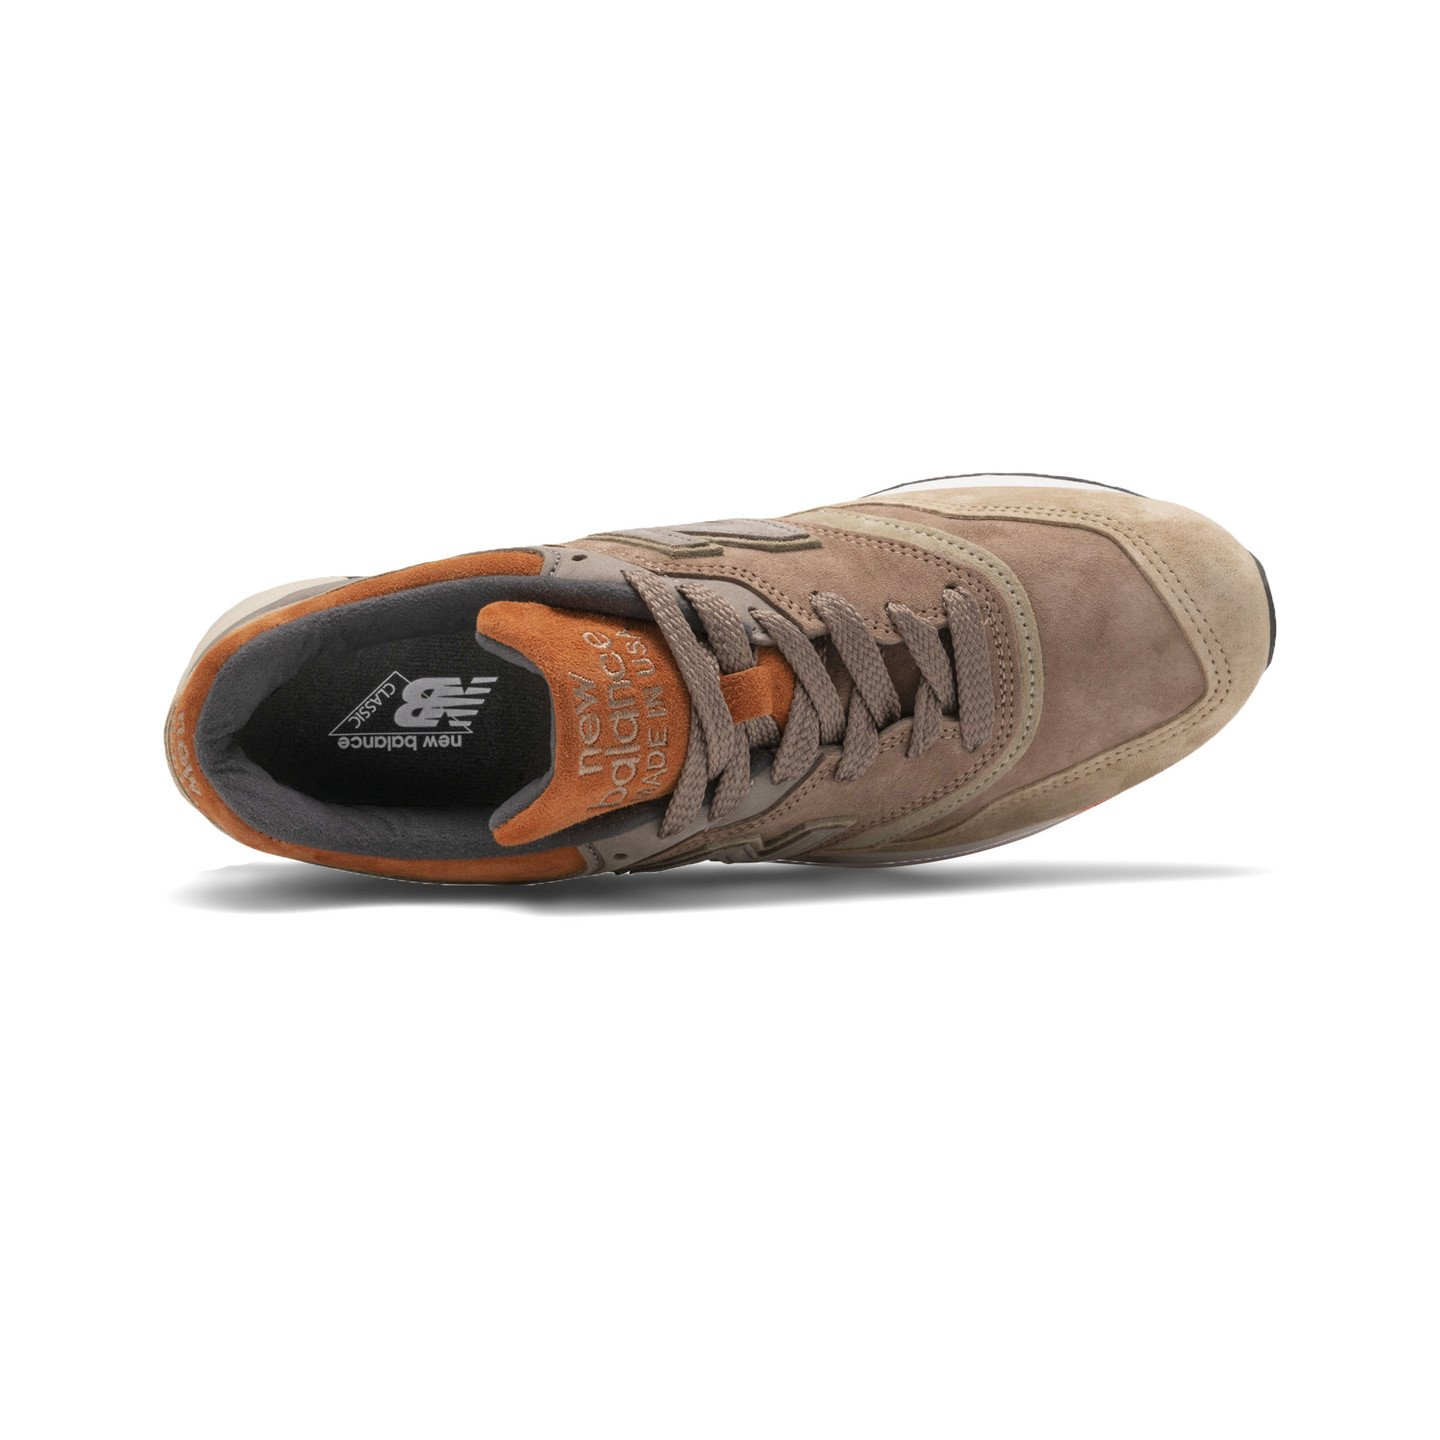 New Balance M997 - Made in USA Tan / Brown / Autumn Orange M997NAJ